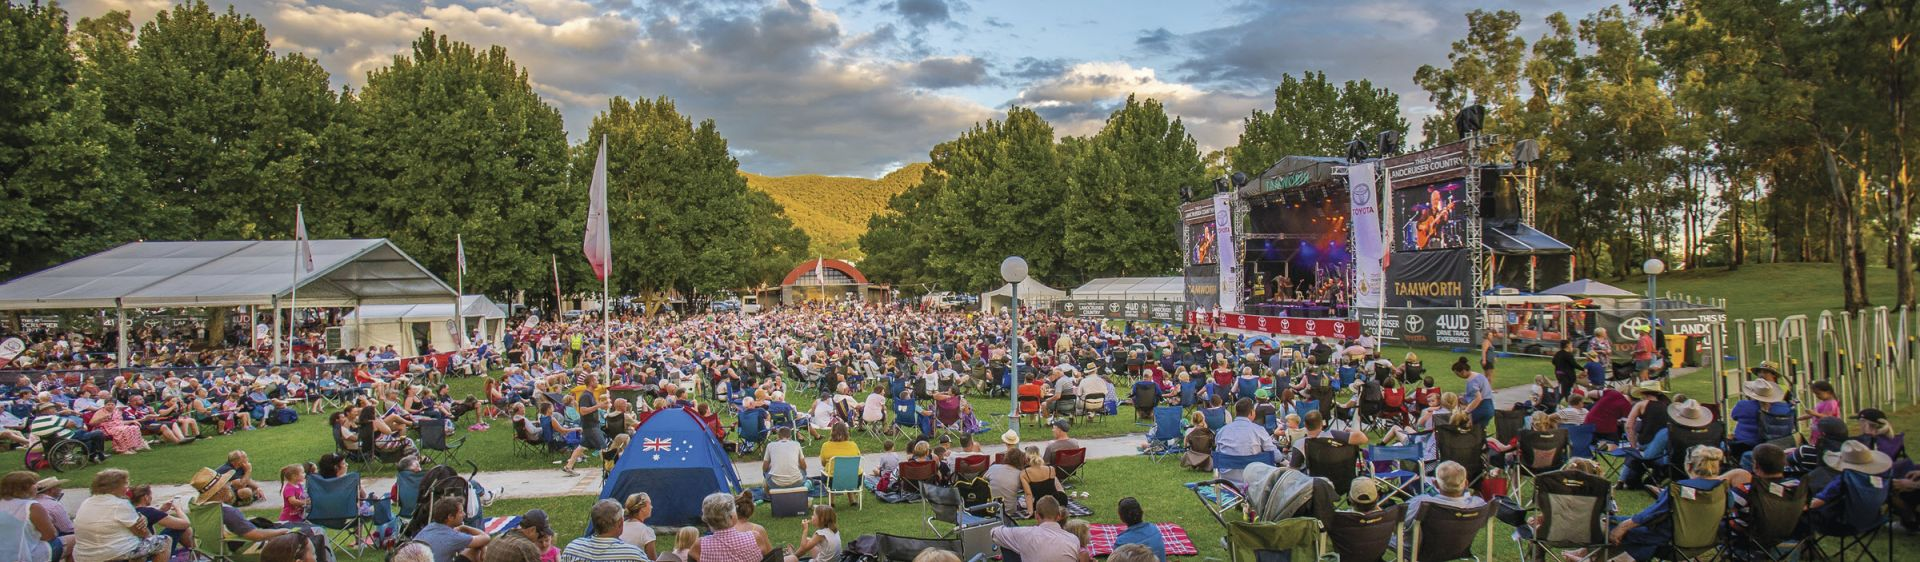 Tamworth Country Music Festival 2017